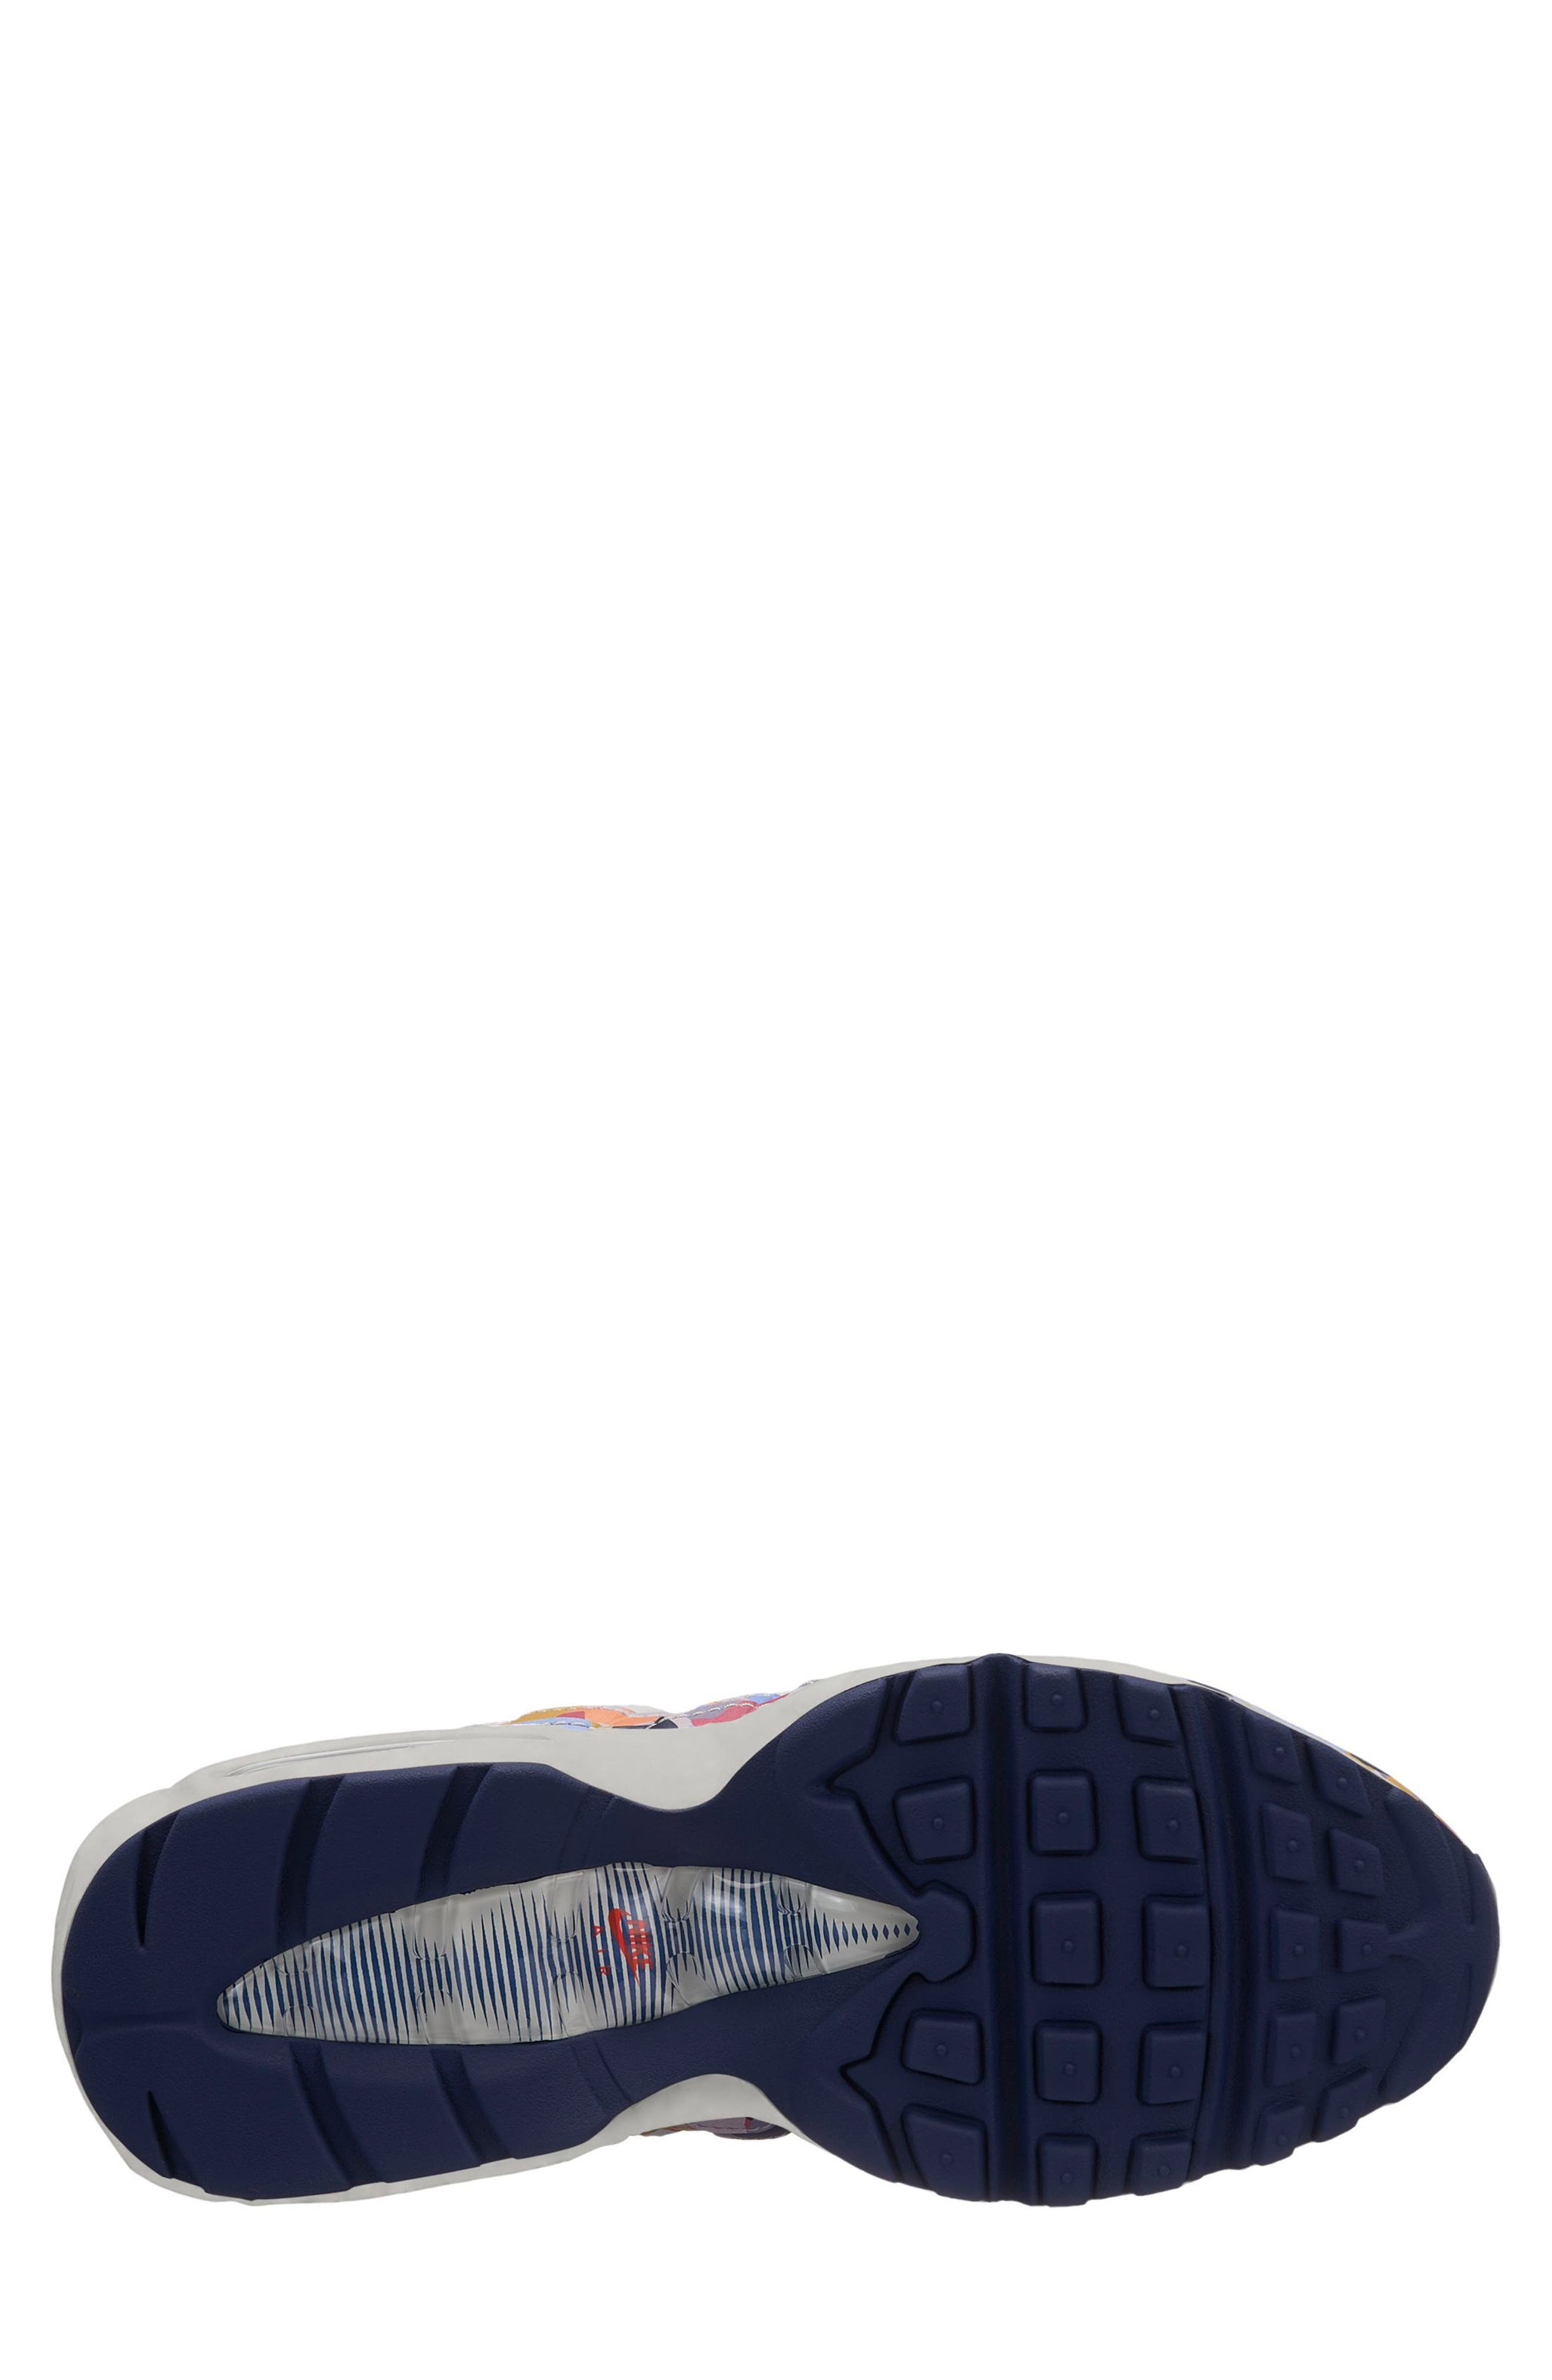 Air Max 95 SE Running Shoe,                             Alternate thumbnail 2, color,                             Grey/ Navy/ Red